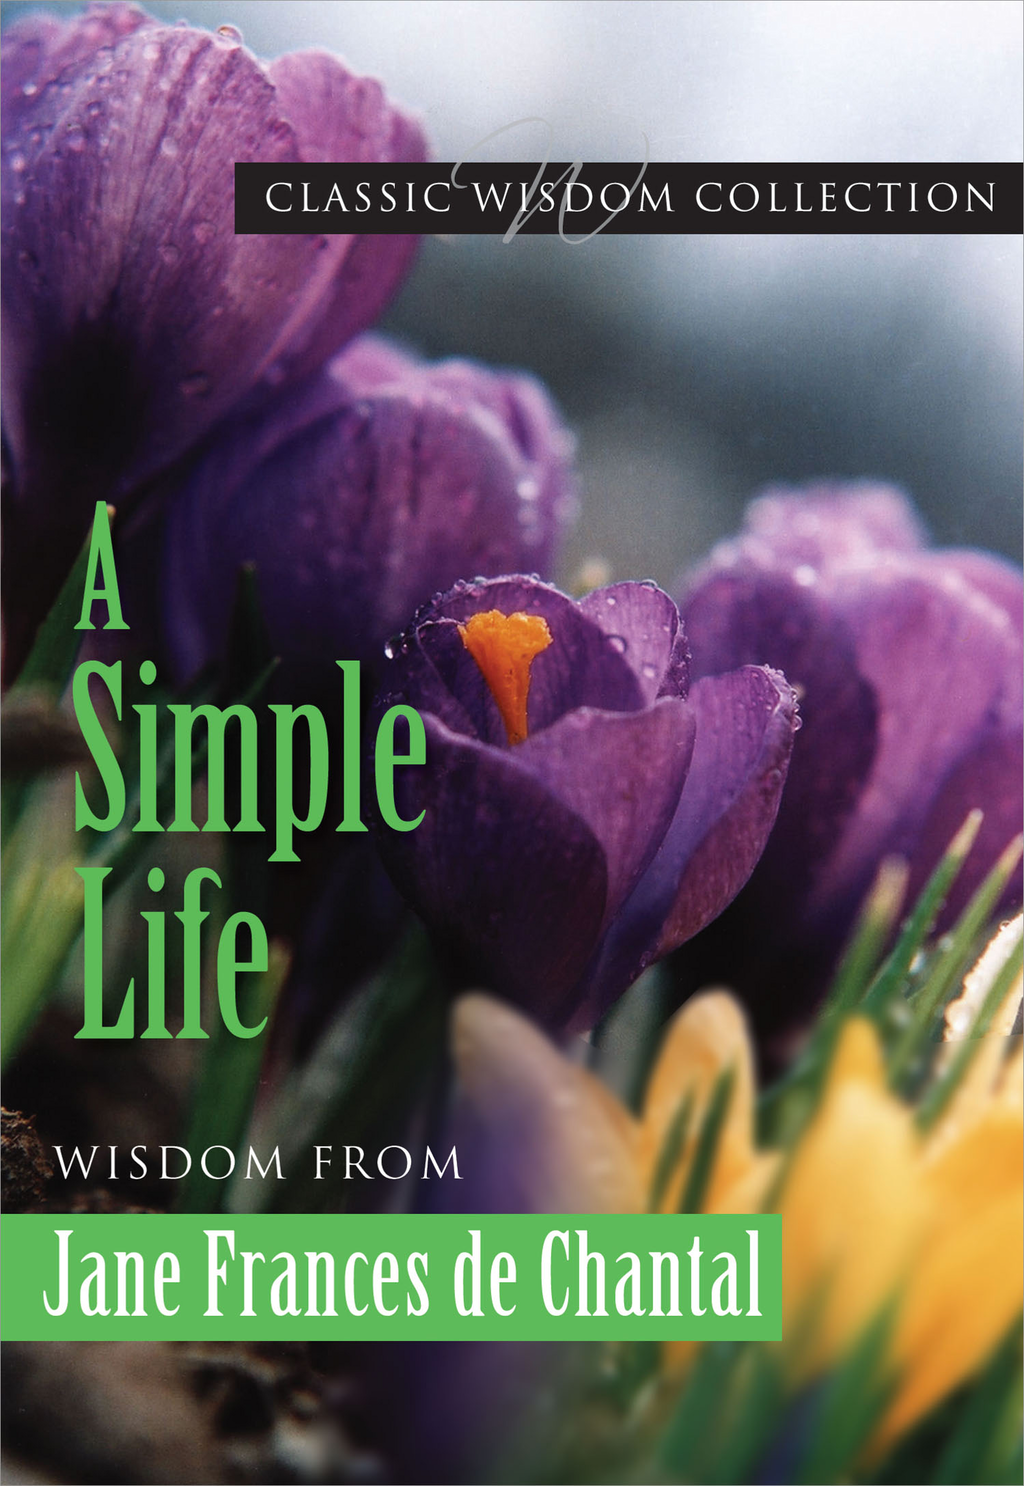 A Simple Life: Wisdom from Jane Frances de Chantal